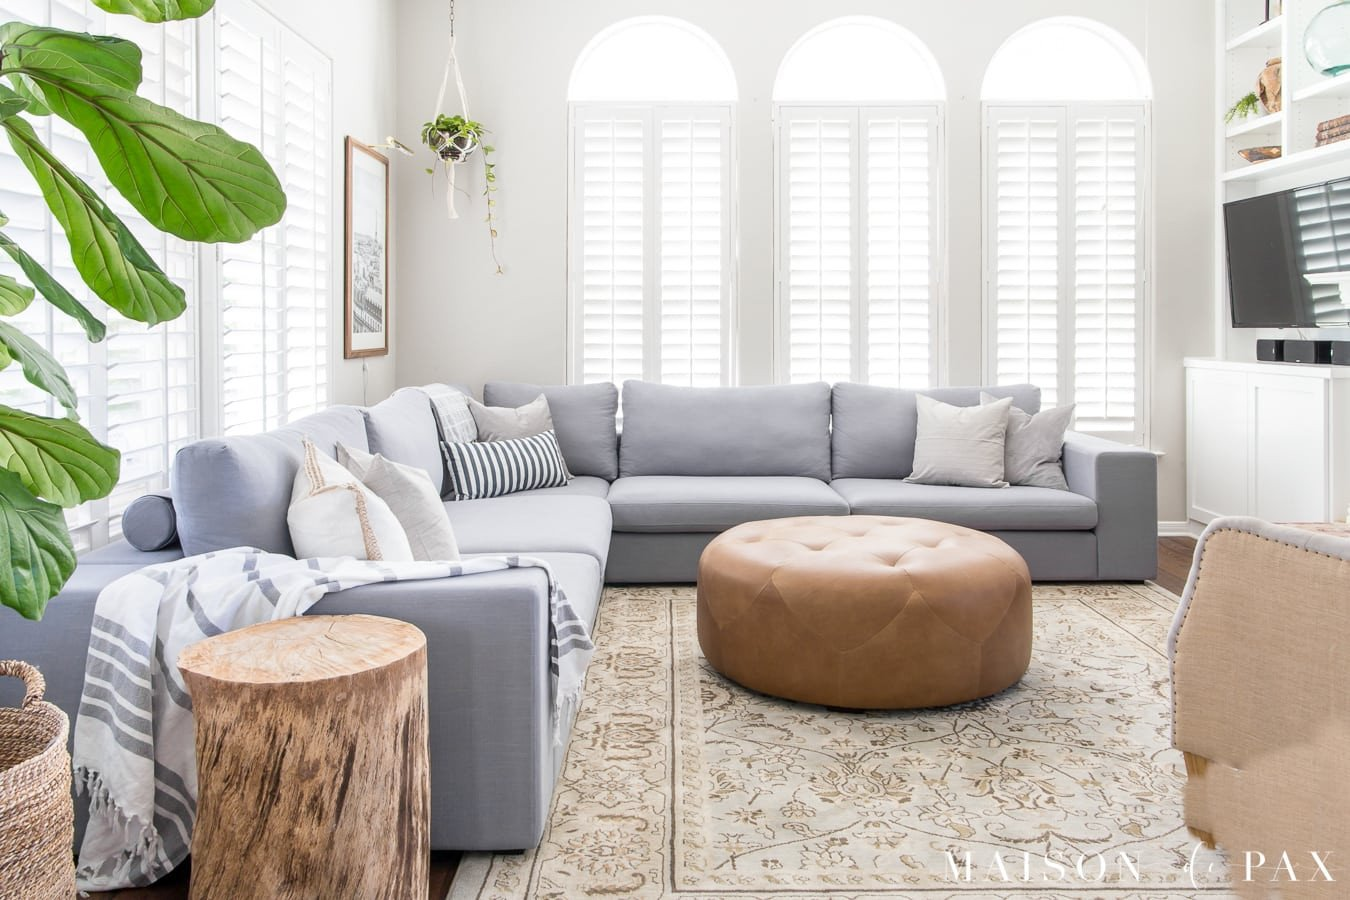 Small Gray Living Room Ideas Luxury Designing A Small Living Room with A Sectional Maison De Pax